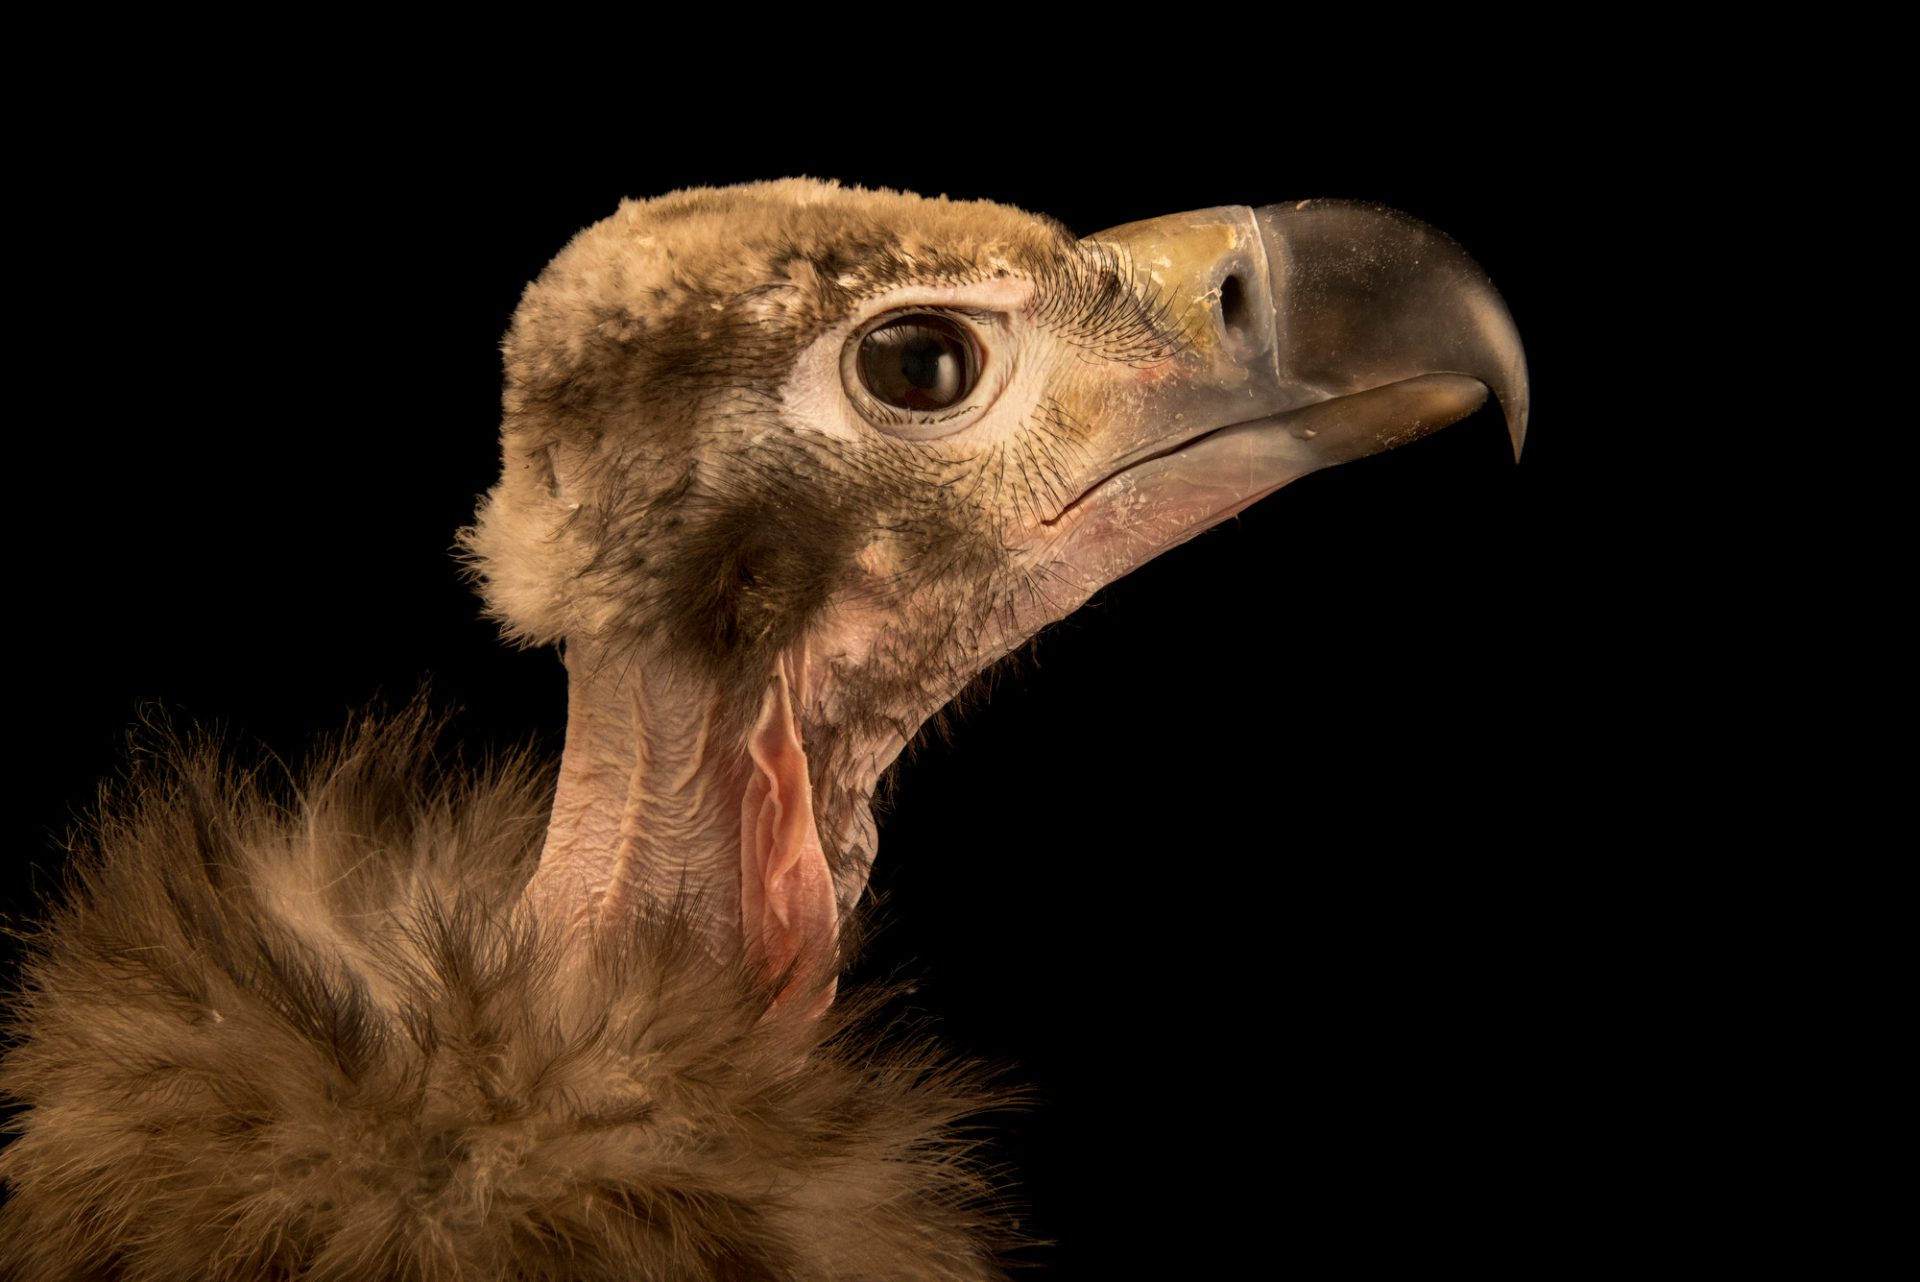 Picture of a critically endangered juvenile red headed vulture (Sarcogyps calvus) at Parco Natura Viva in Bussolengo, Italy.